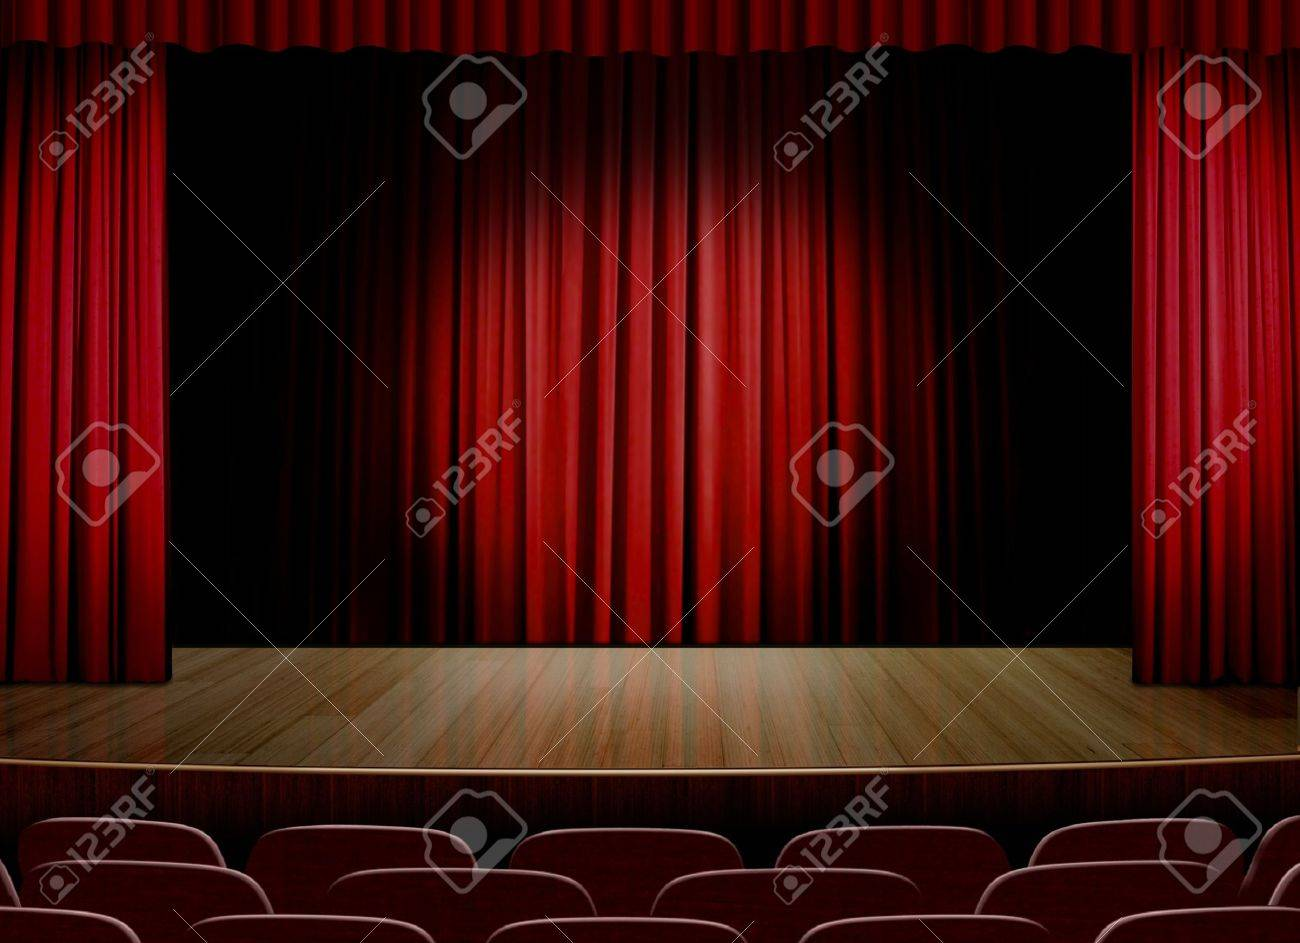 Empty stage curtains with lights - Empty Stage With Red Curtain Stock Photo 13619040